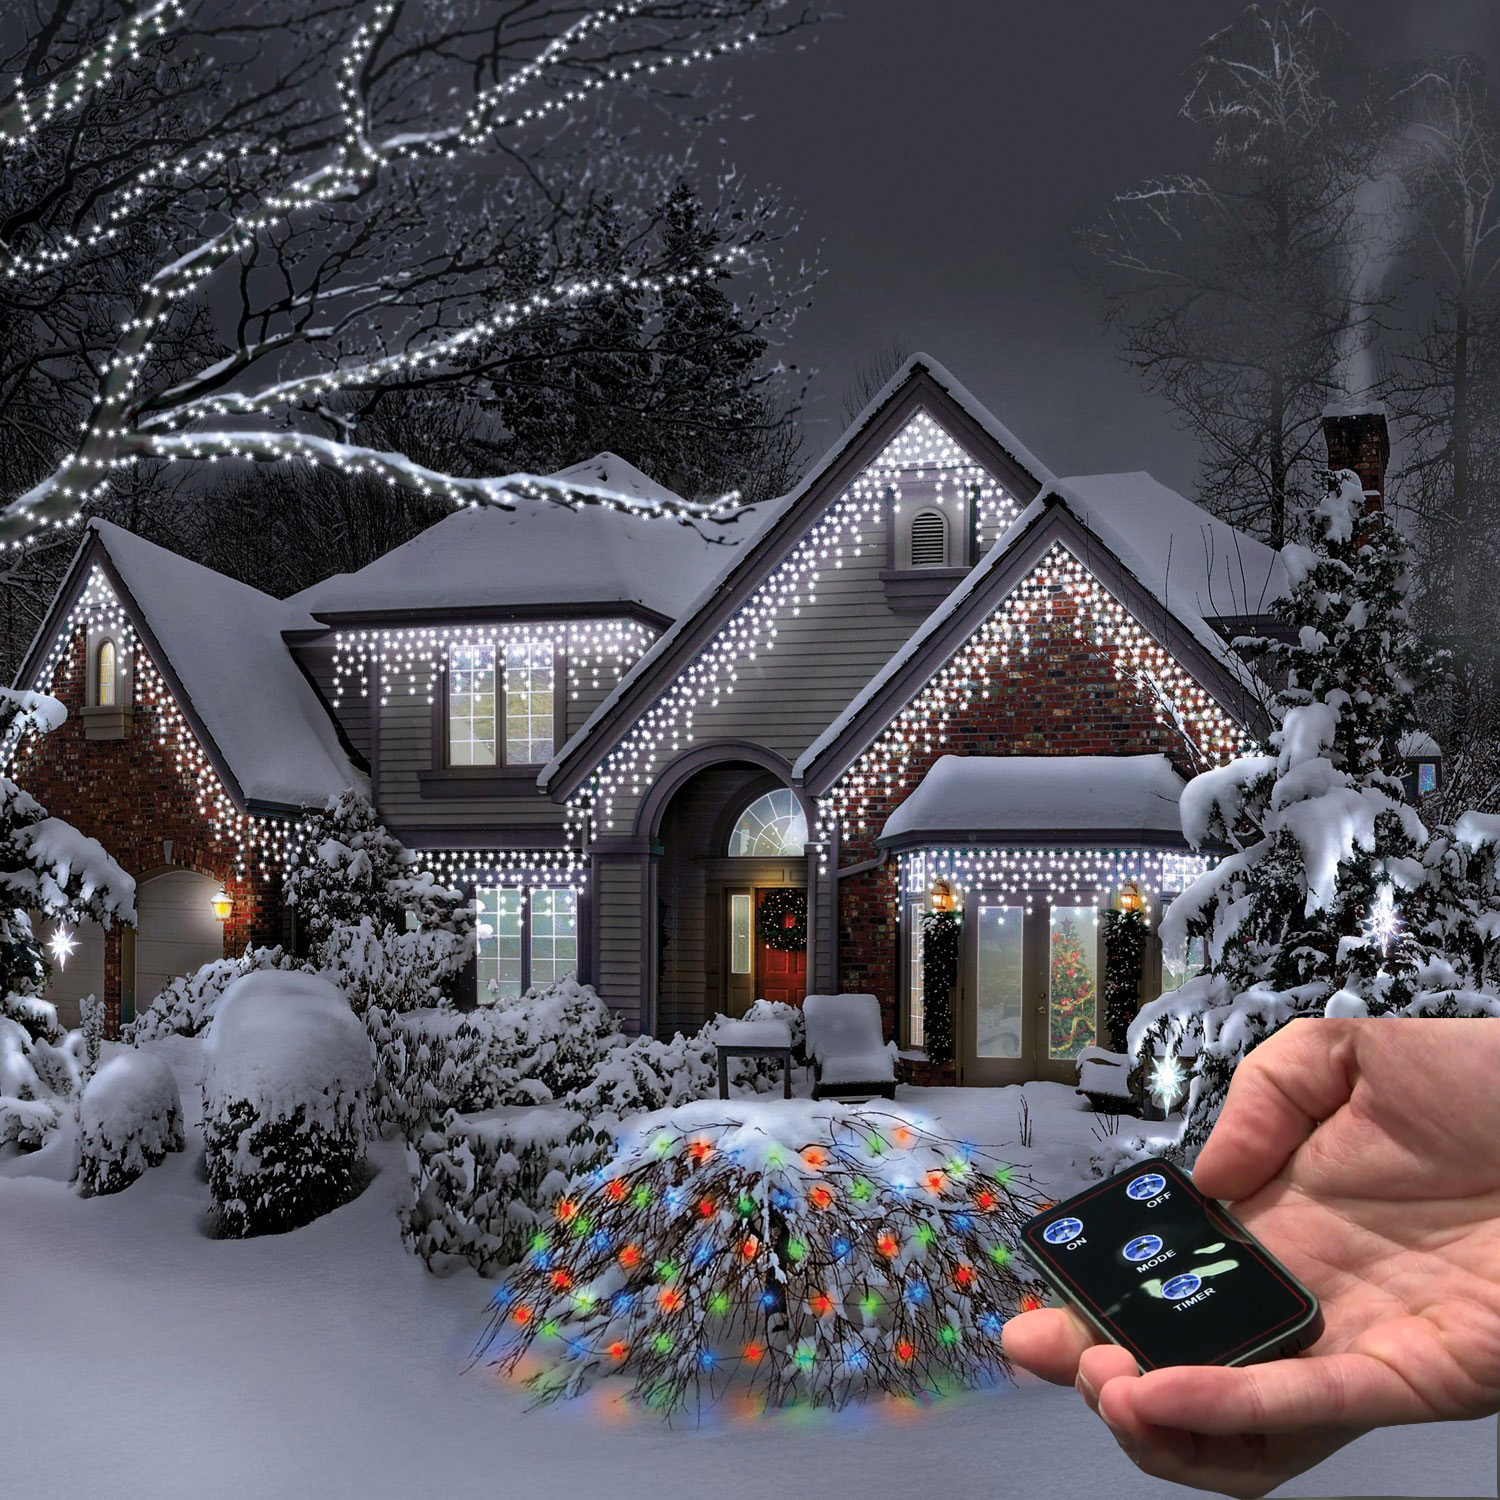 Snowing Christmas Lights.Details About Christmas 200 Icicle Snowing White Led Xmas Lights Party Outdoor Garden W Remote